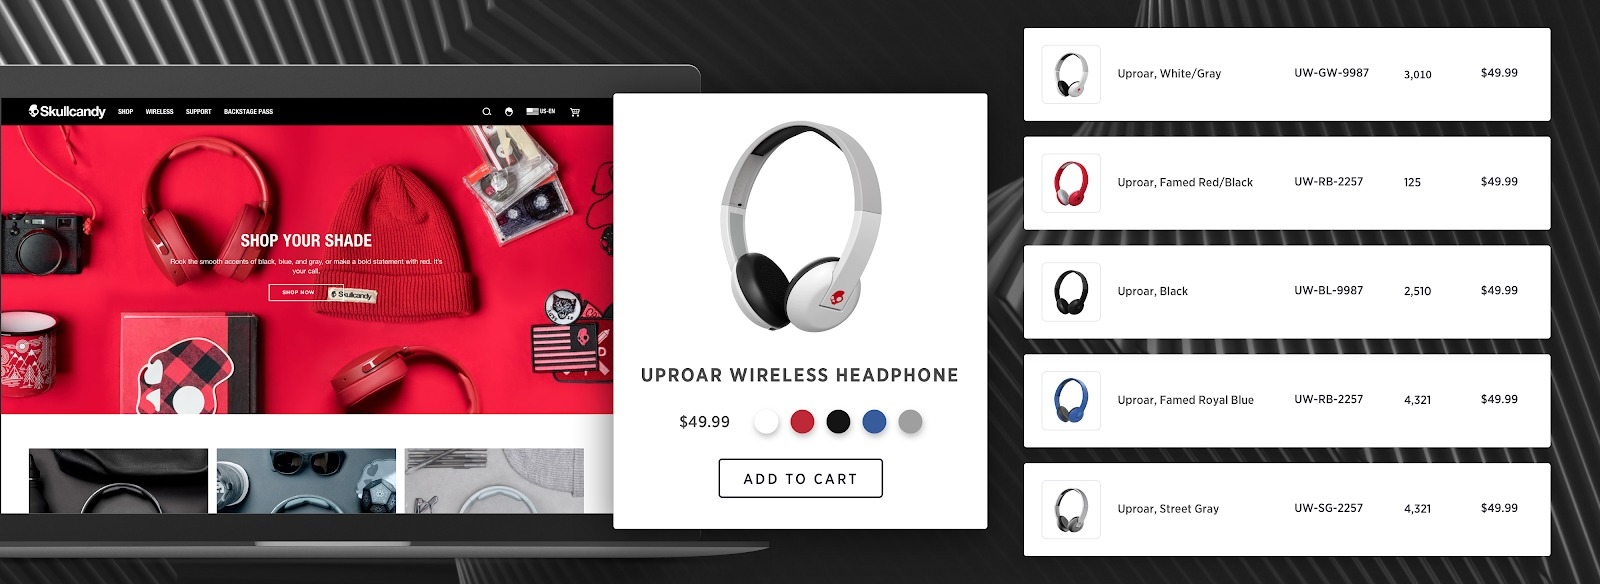 Skullcandy and bigecommerce